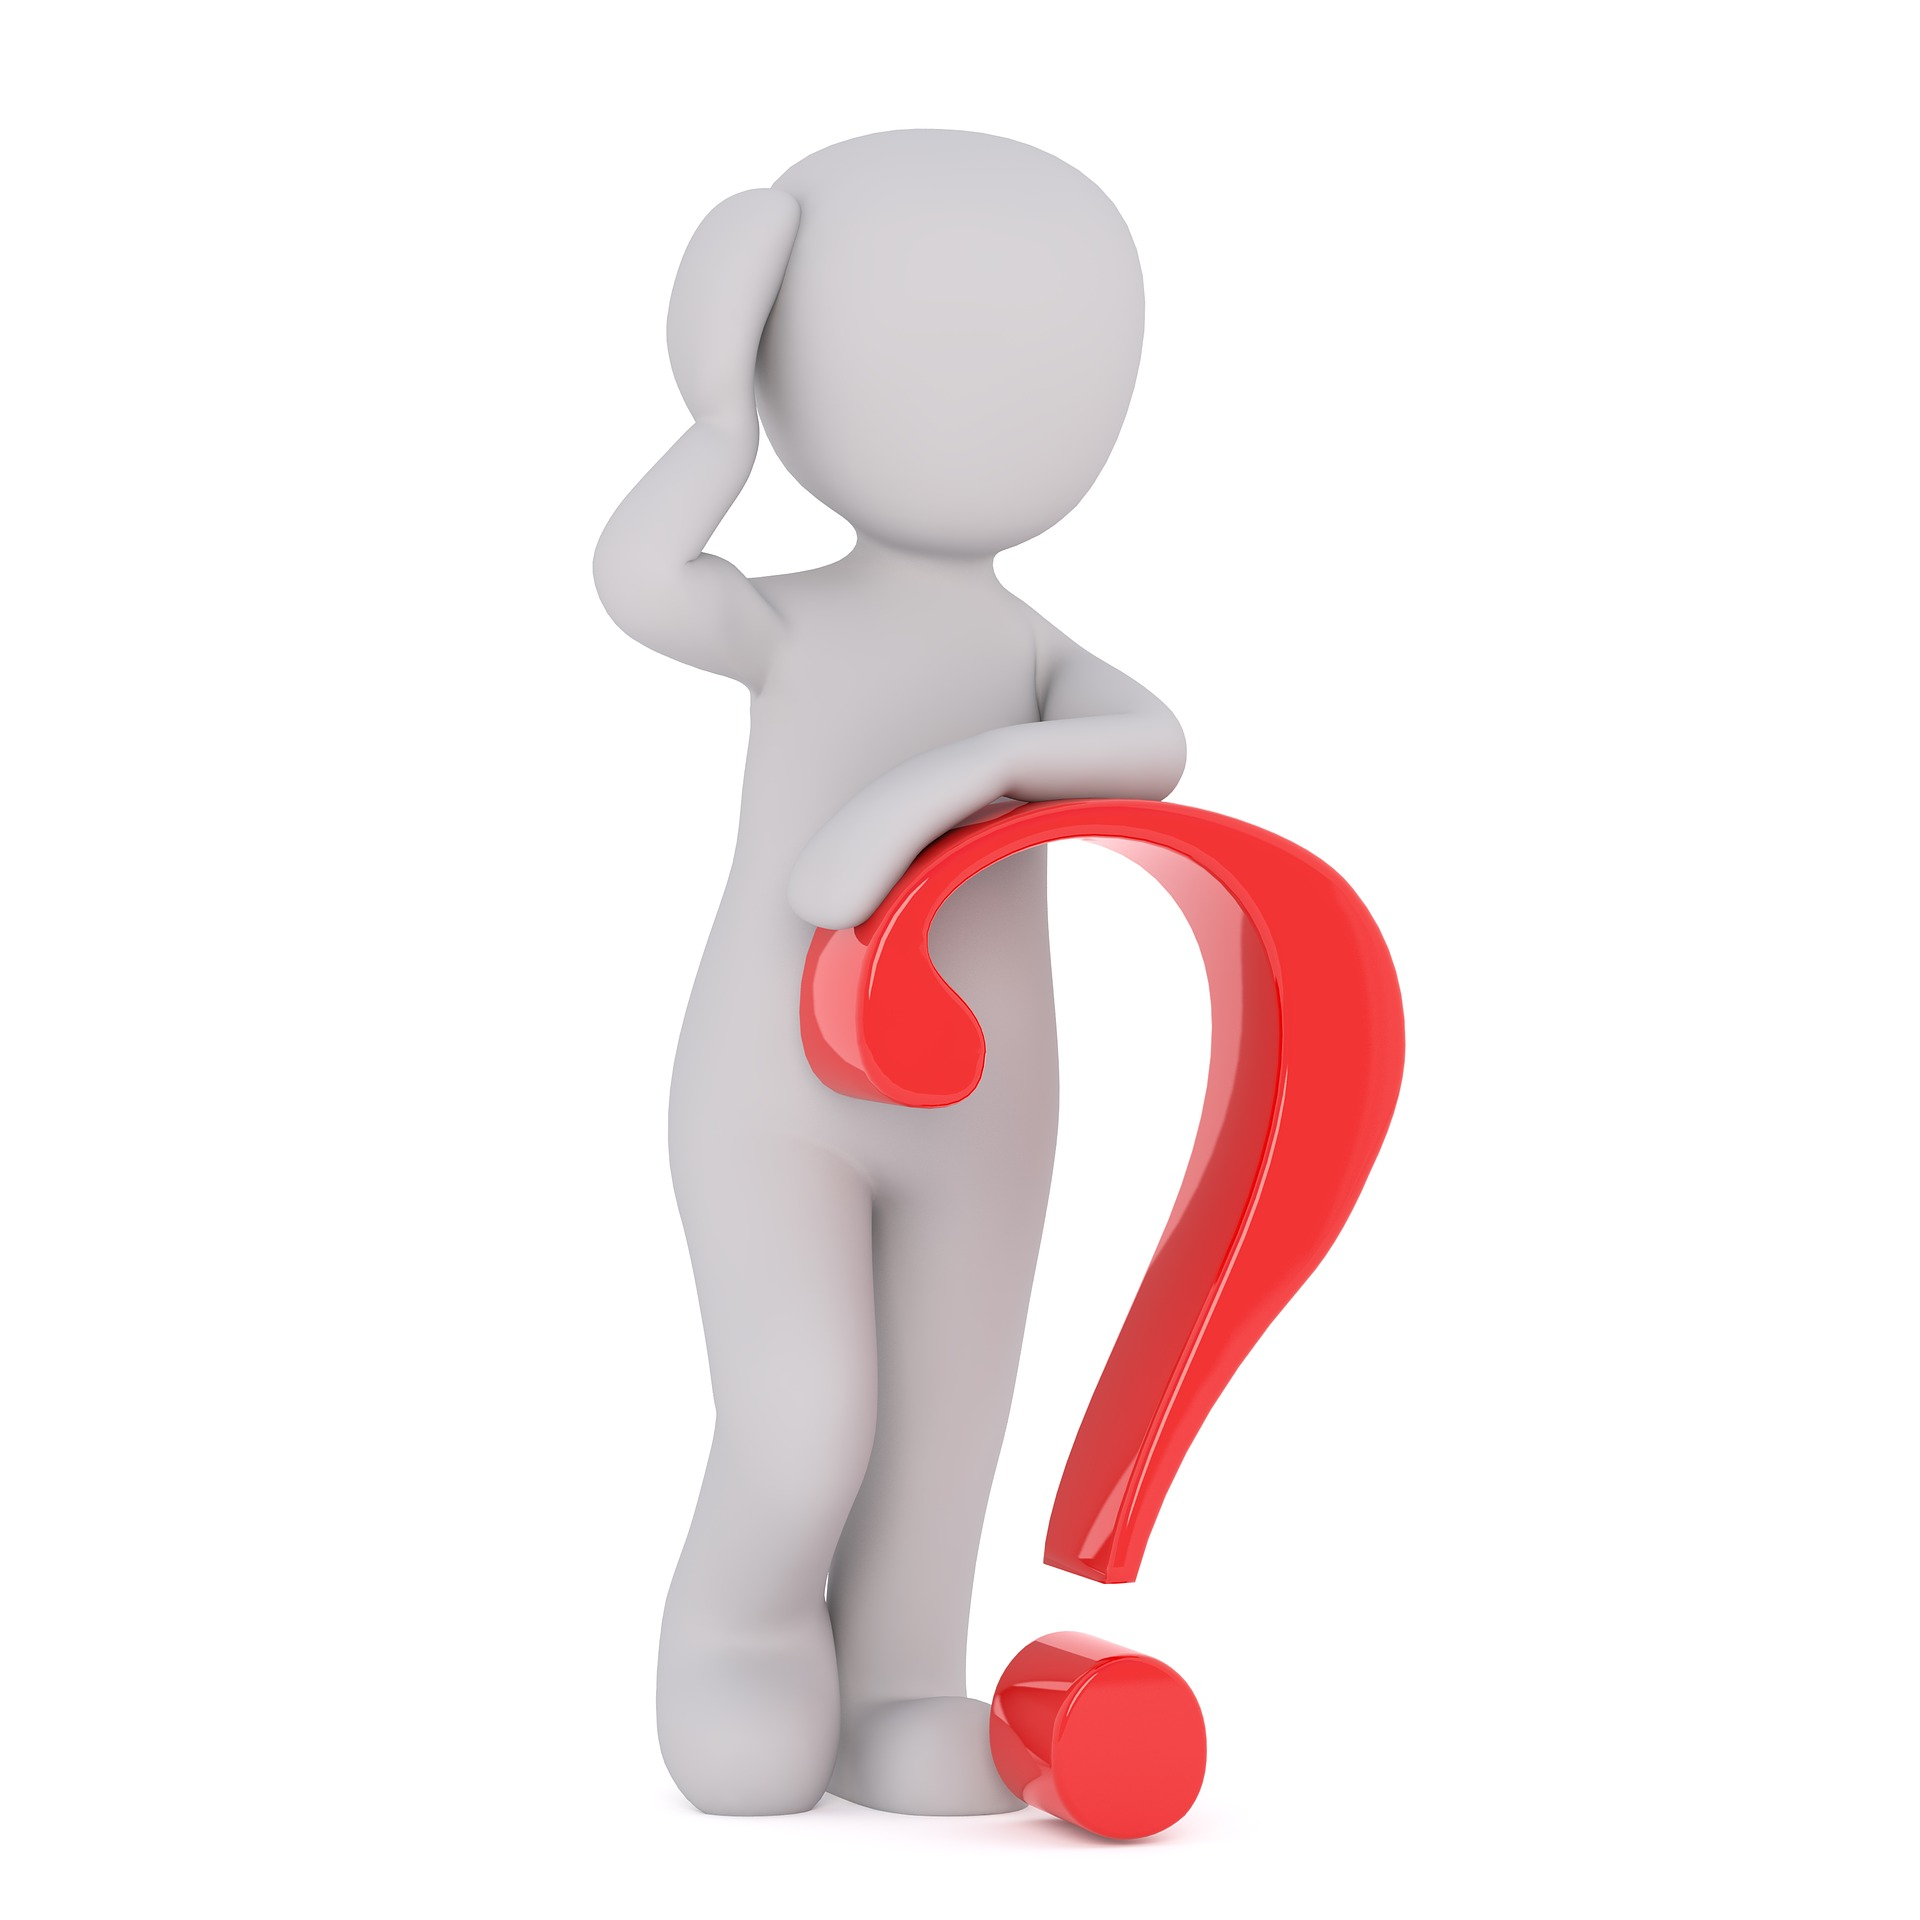 Toronto Adult Speech Clinic Frequently Asked Questions